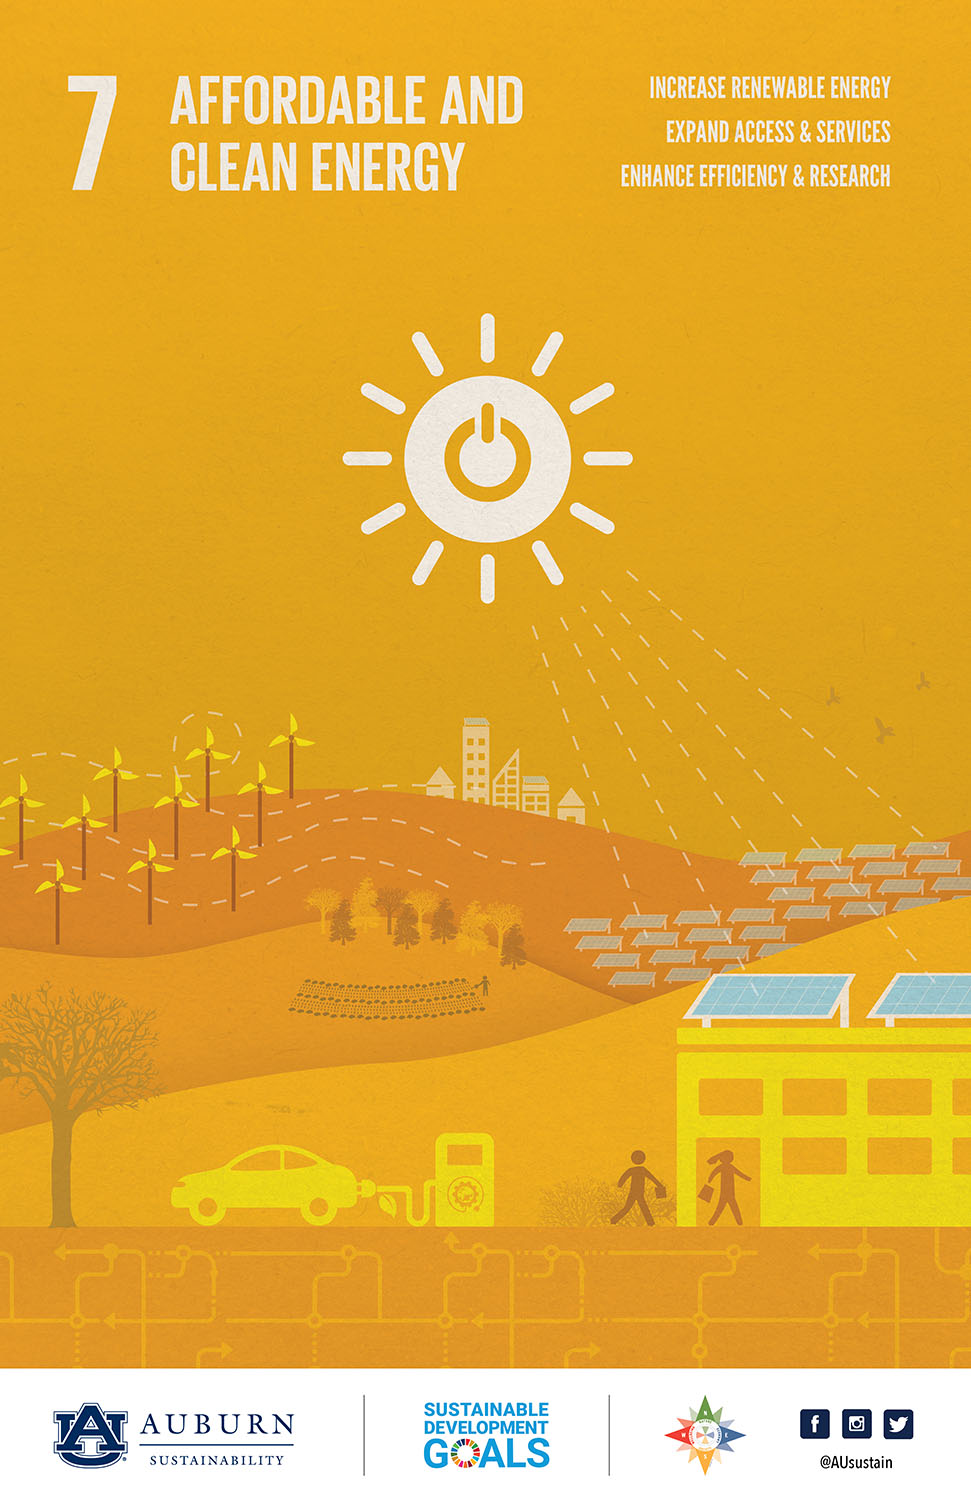 Sustainable Development Goal 7 Poster illustration: Affordable and Clean Energy. Goals include: Increase renewable energy, expand access and services, and enhance efficiency and research.